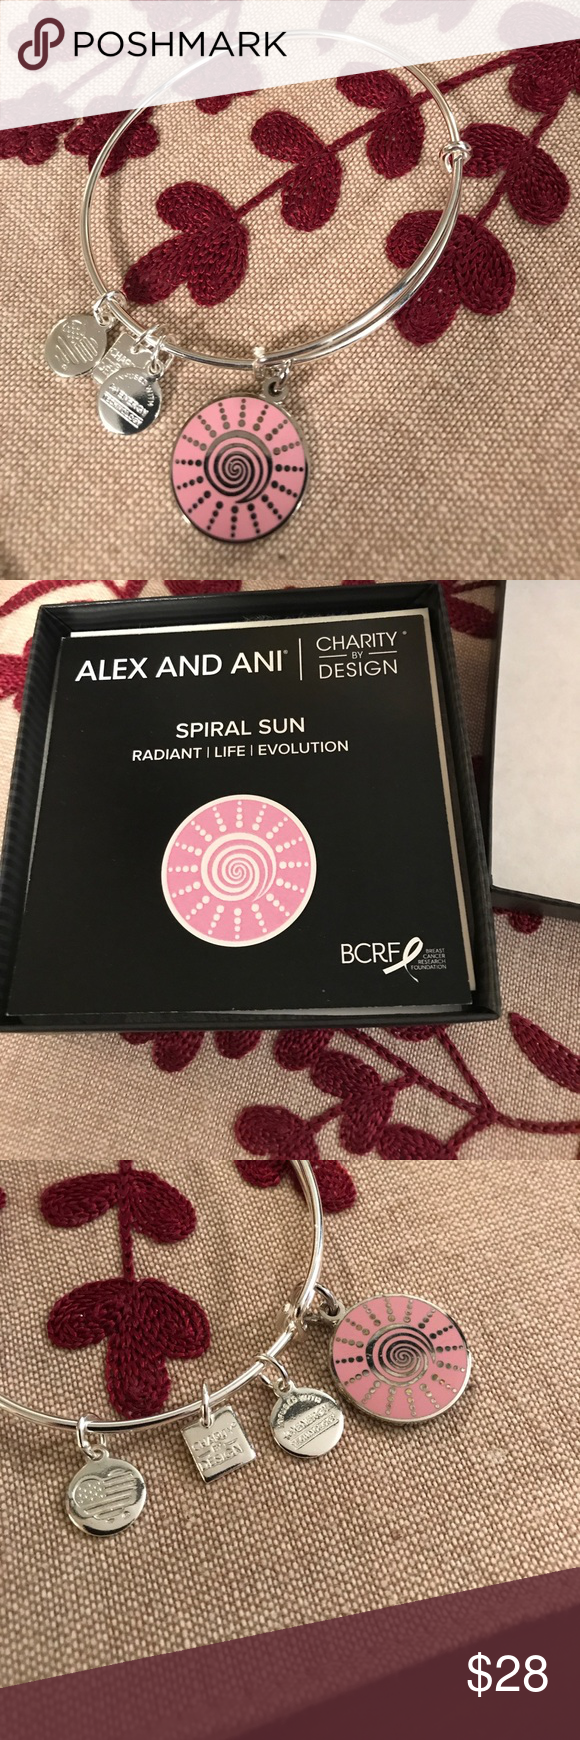 Spiral Sun Alex and Ani Spiral Sun Alex and Ani, NWOT. In perfect condition, box and spiral sun card included Alex & Ani Jewelry Bracelets